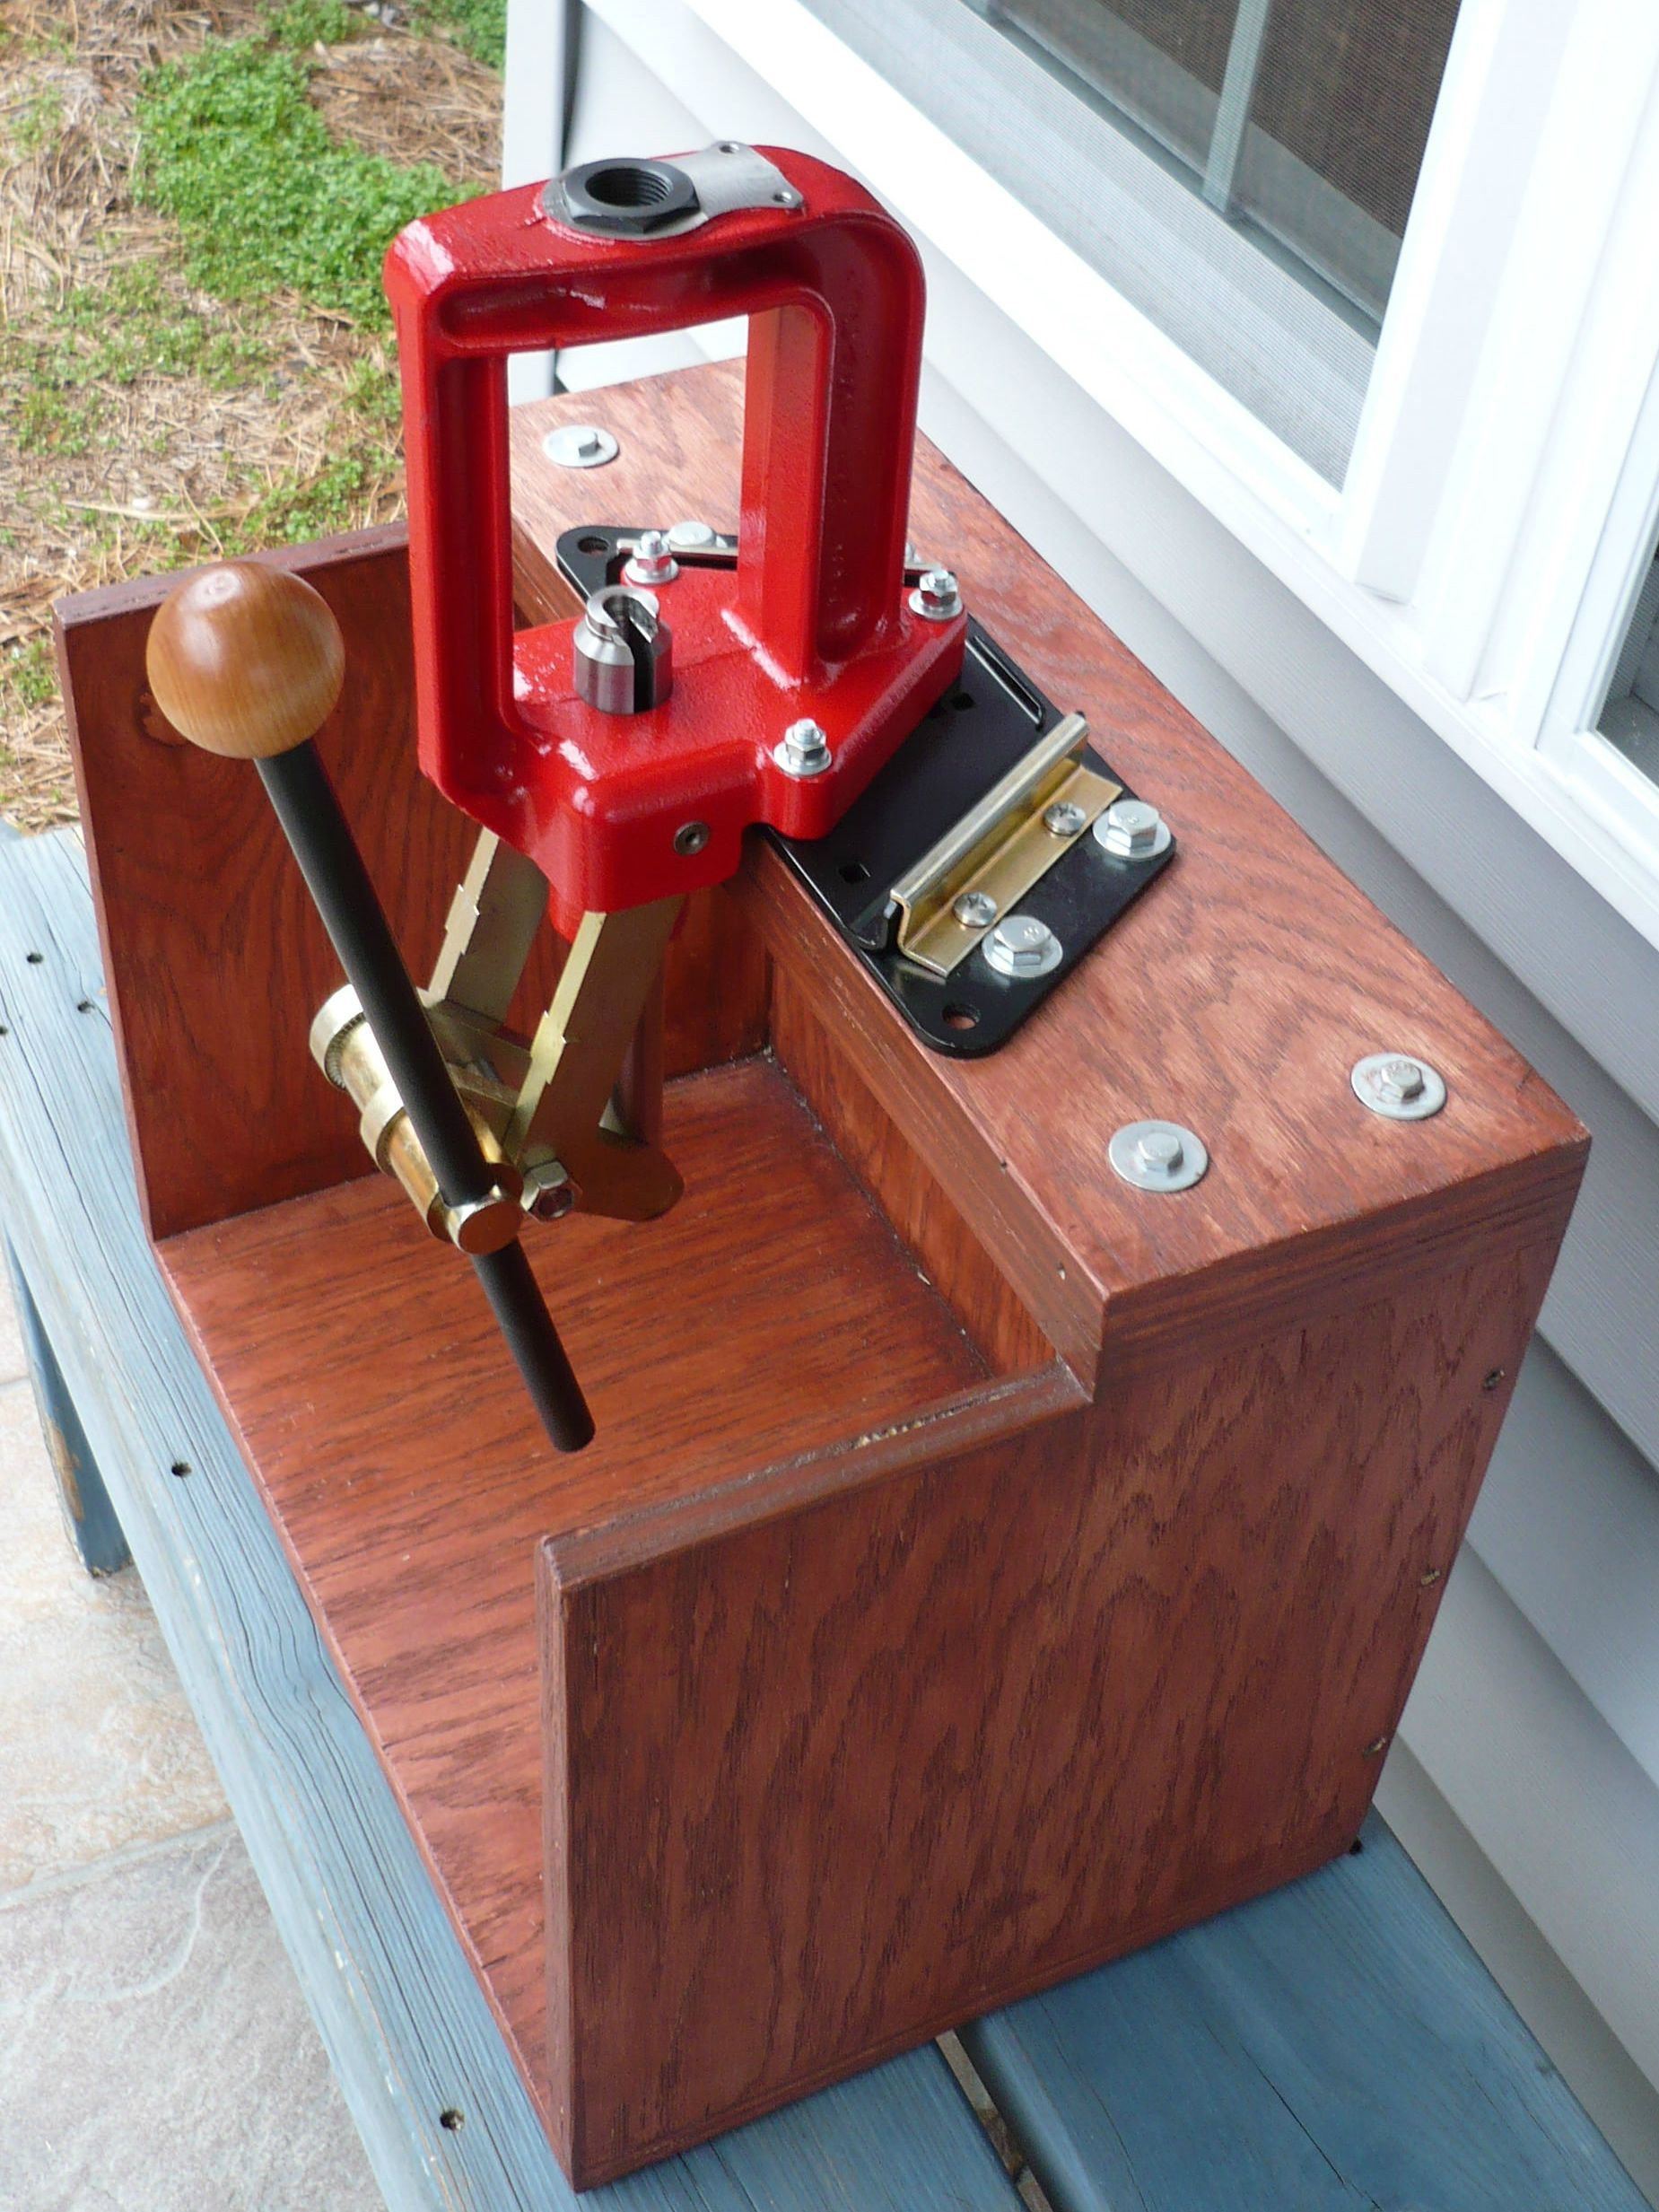 What are some options for a portable reloading bench